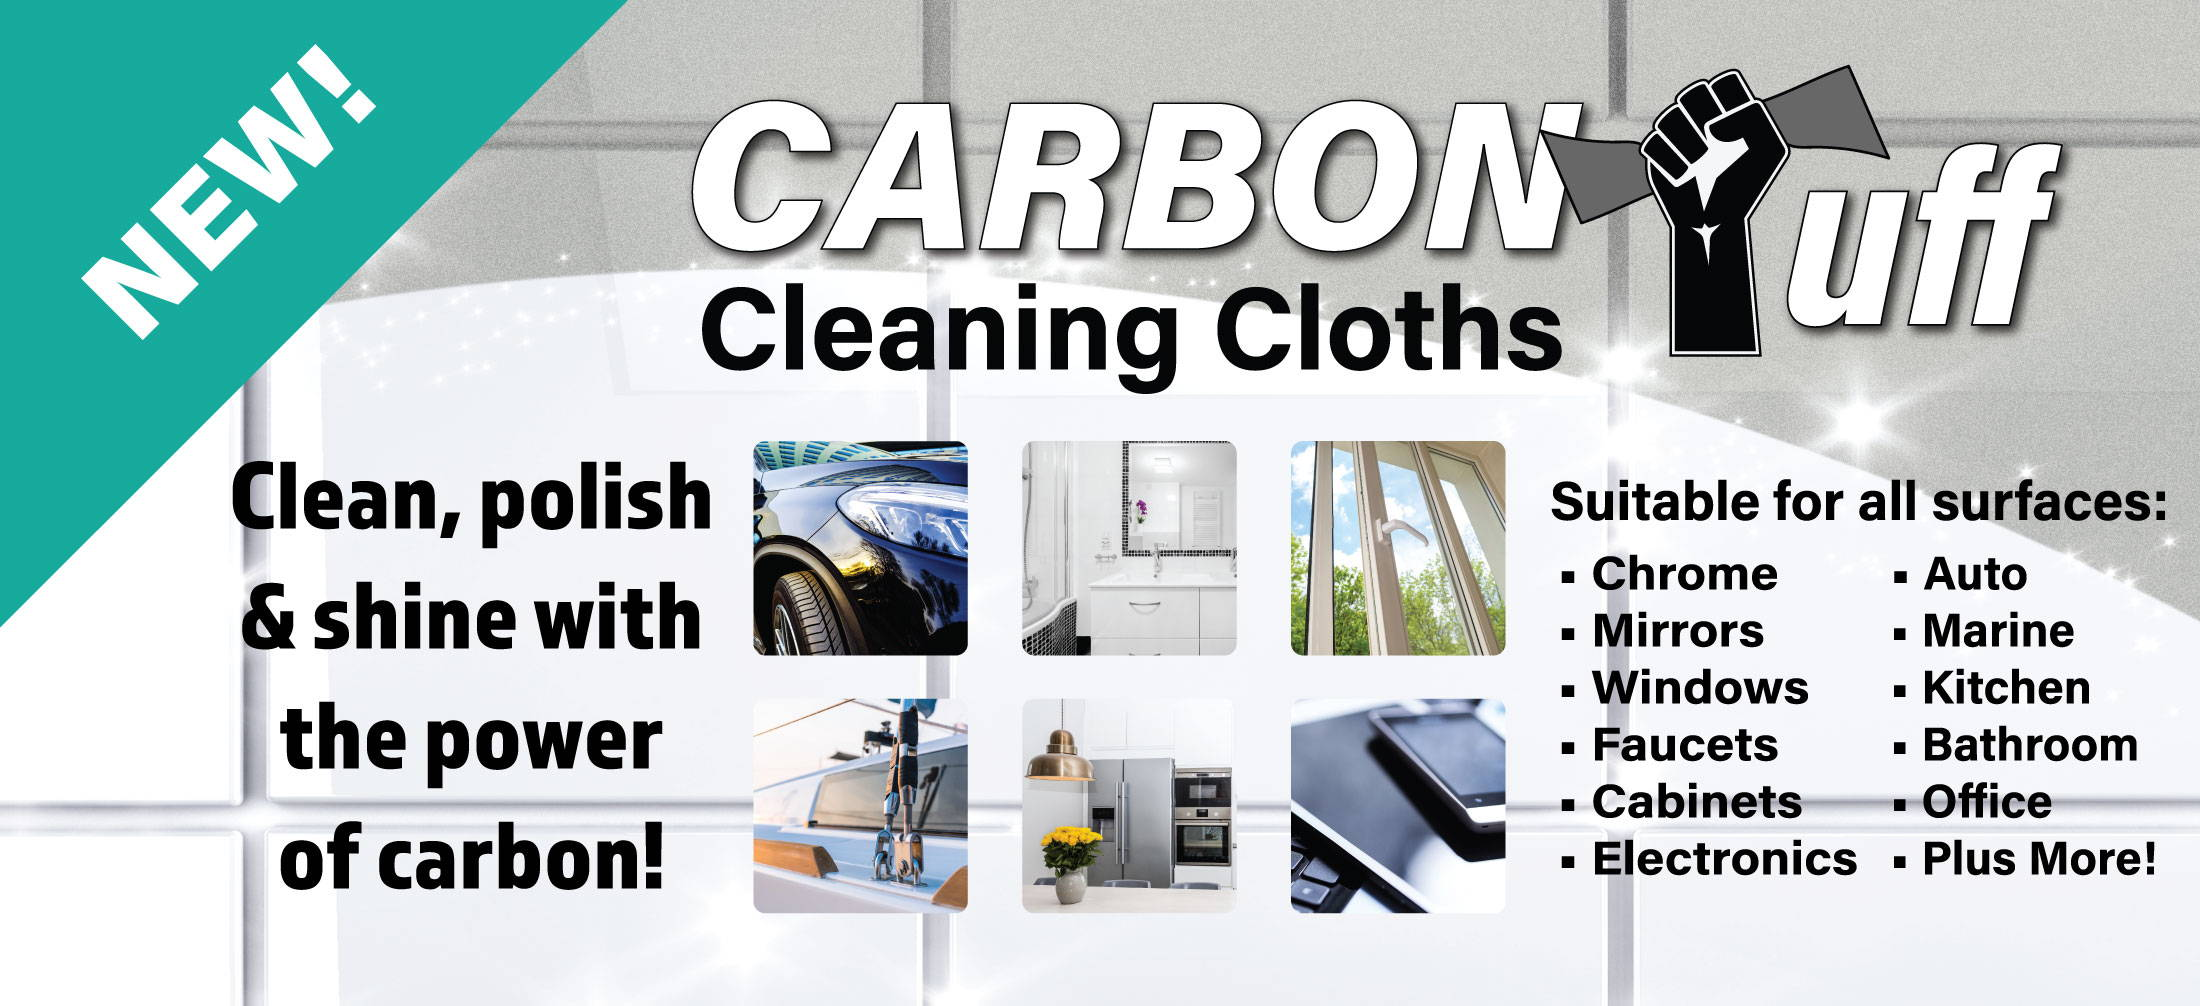 Carbon Tuff Cleaning Cloths